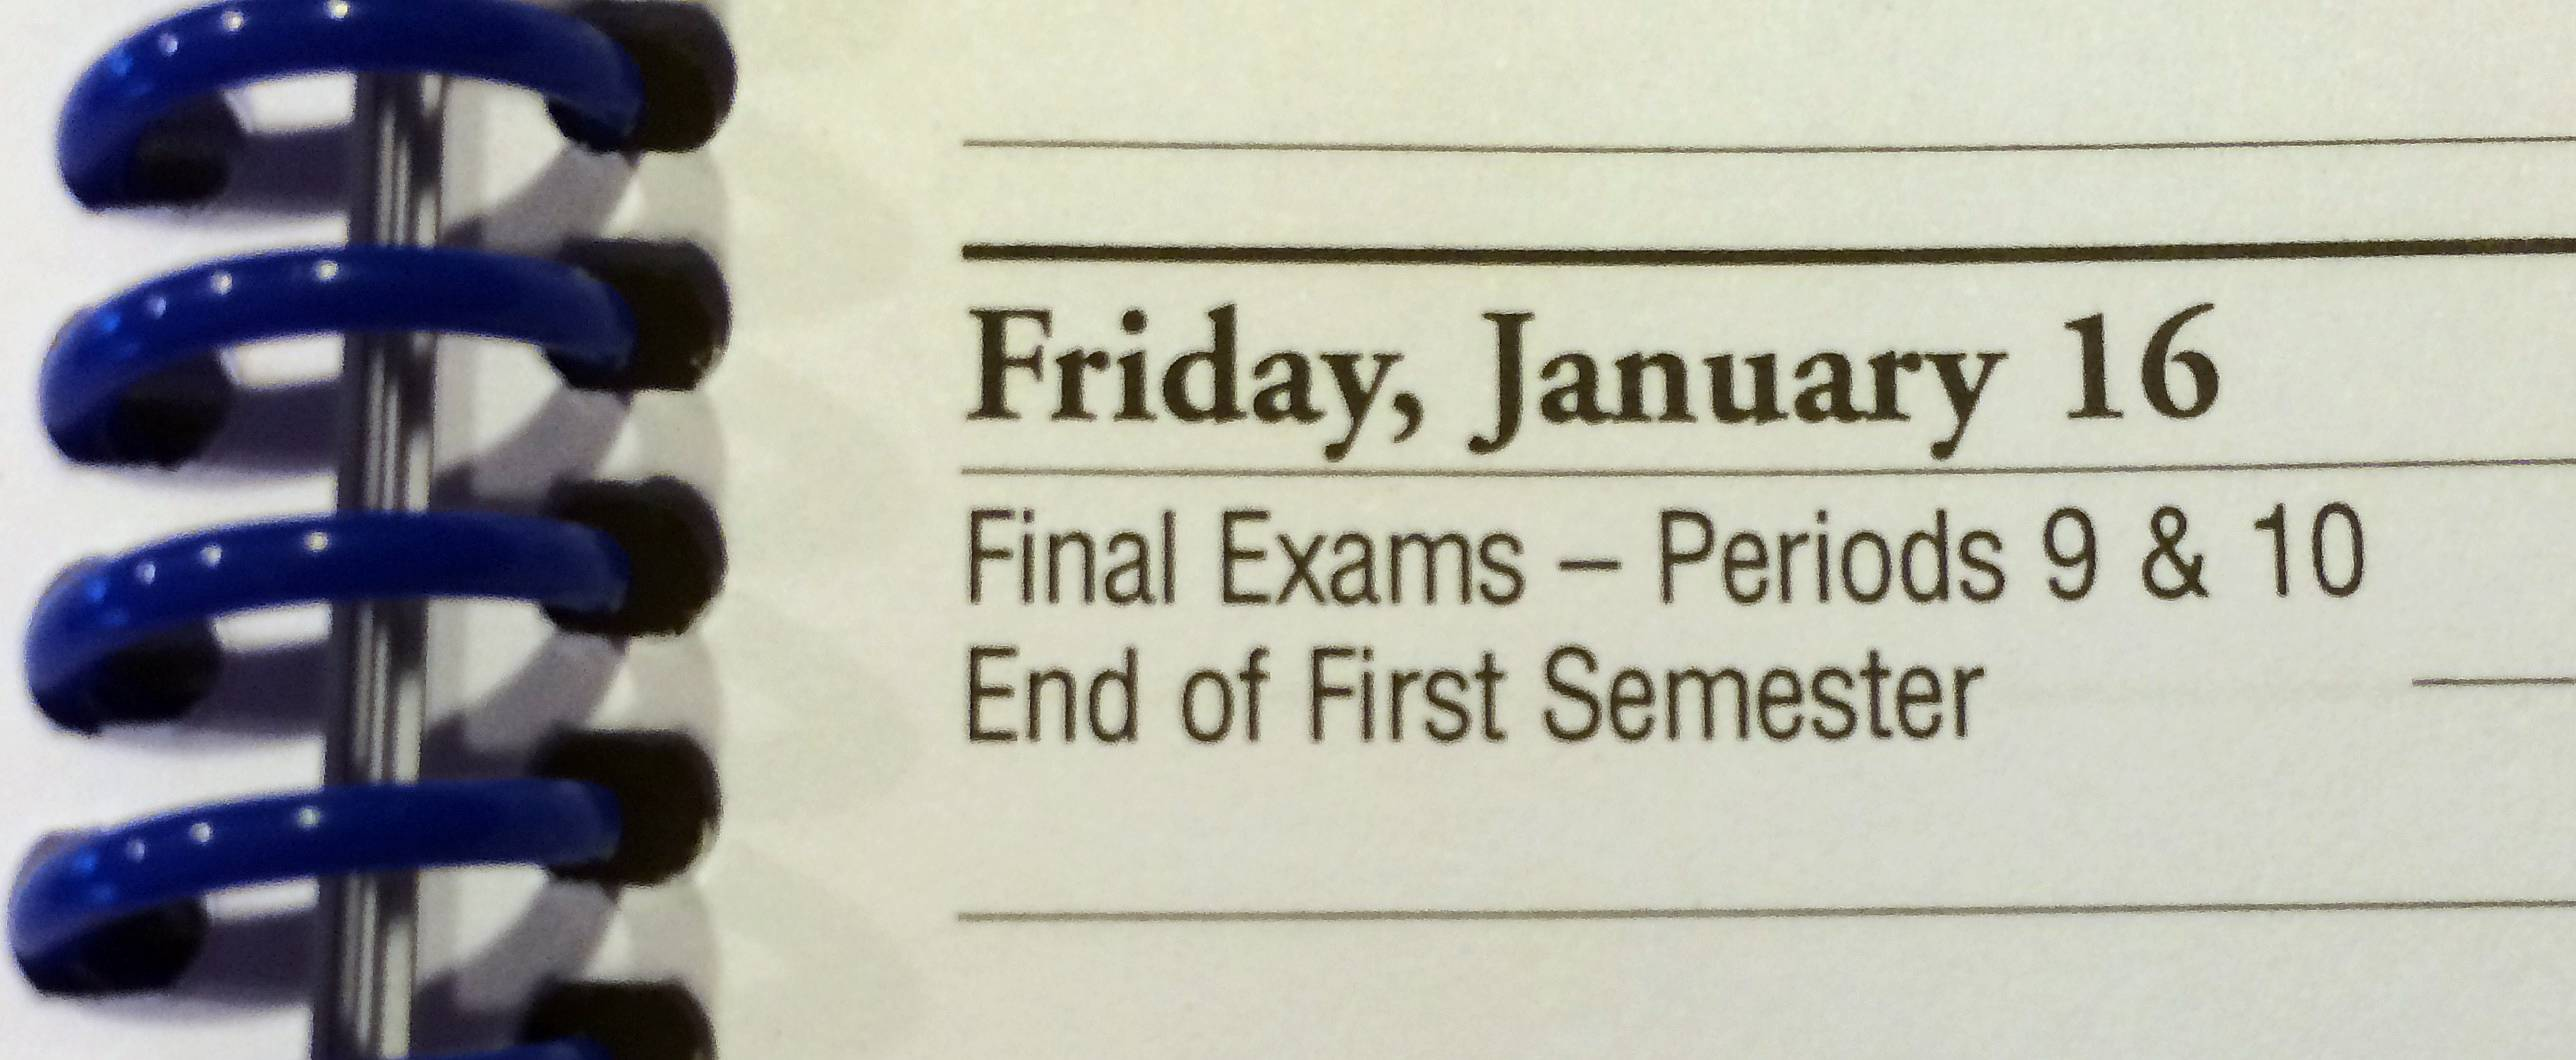 In Geneva Unit District 304, the first semester ends on Friday, Jan. 16, 2015.